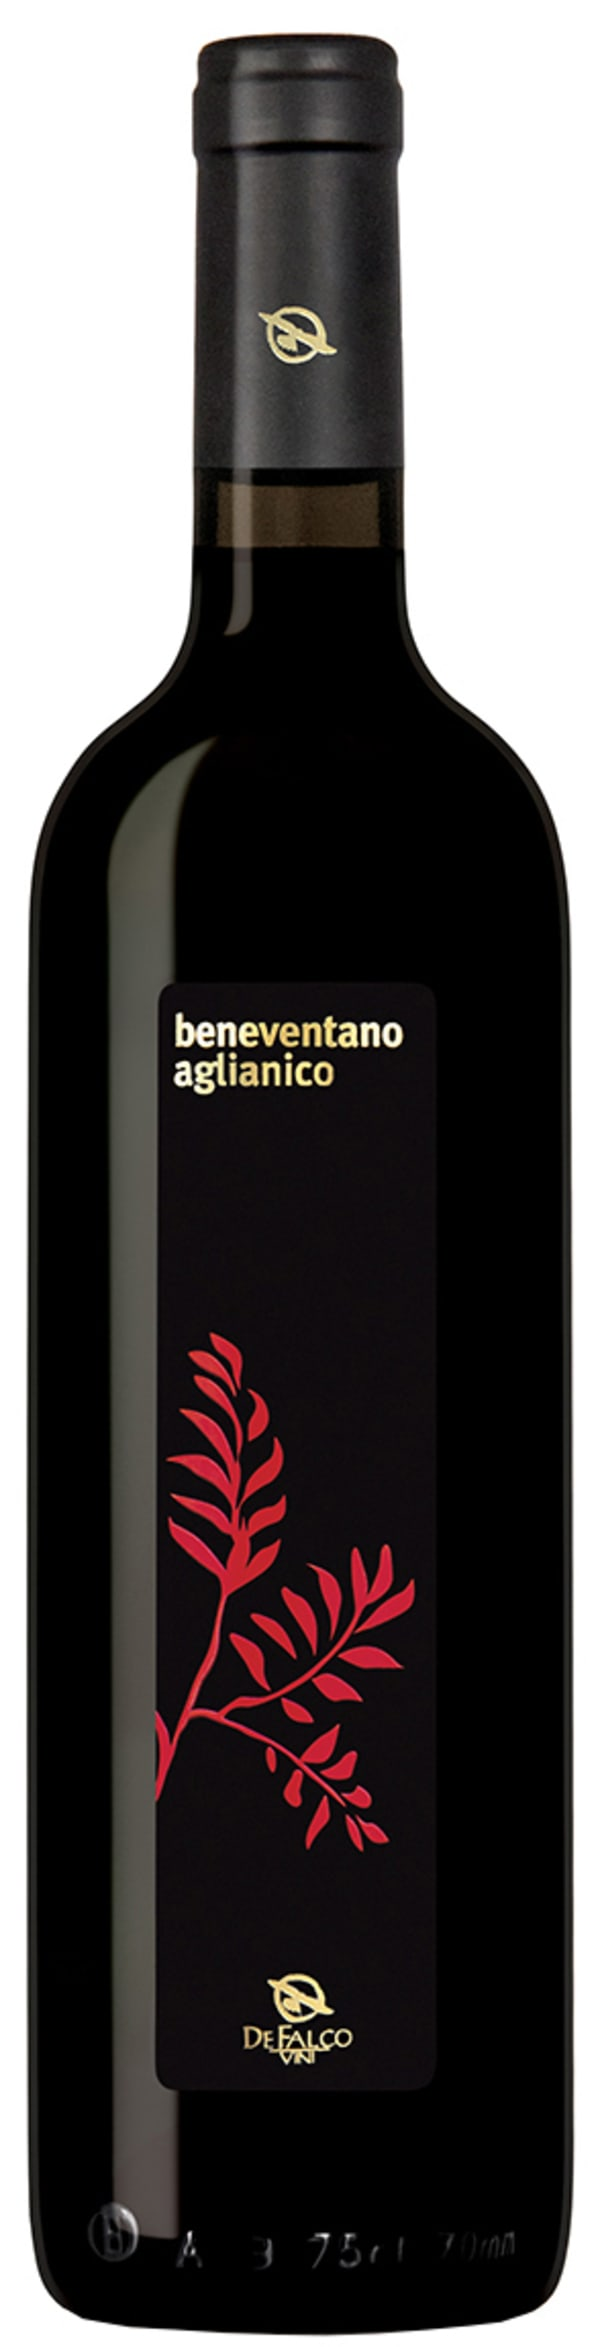 De Falco Beneventano Aglianico 2015